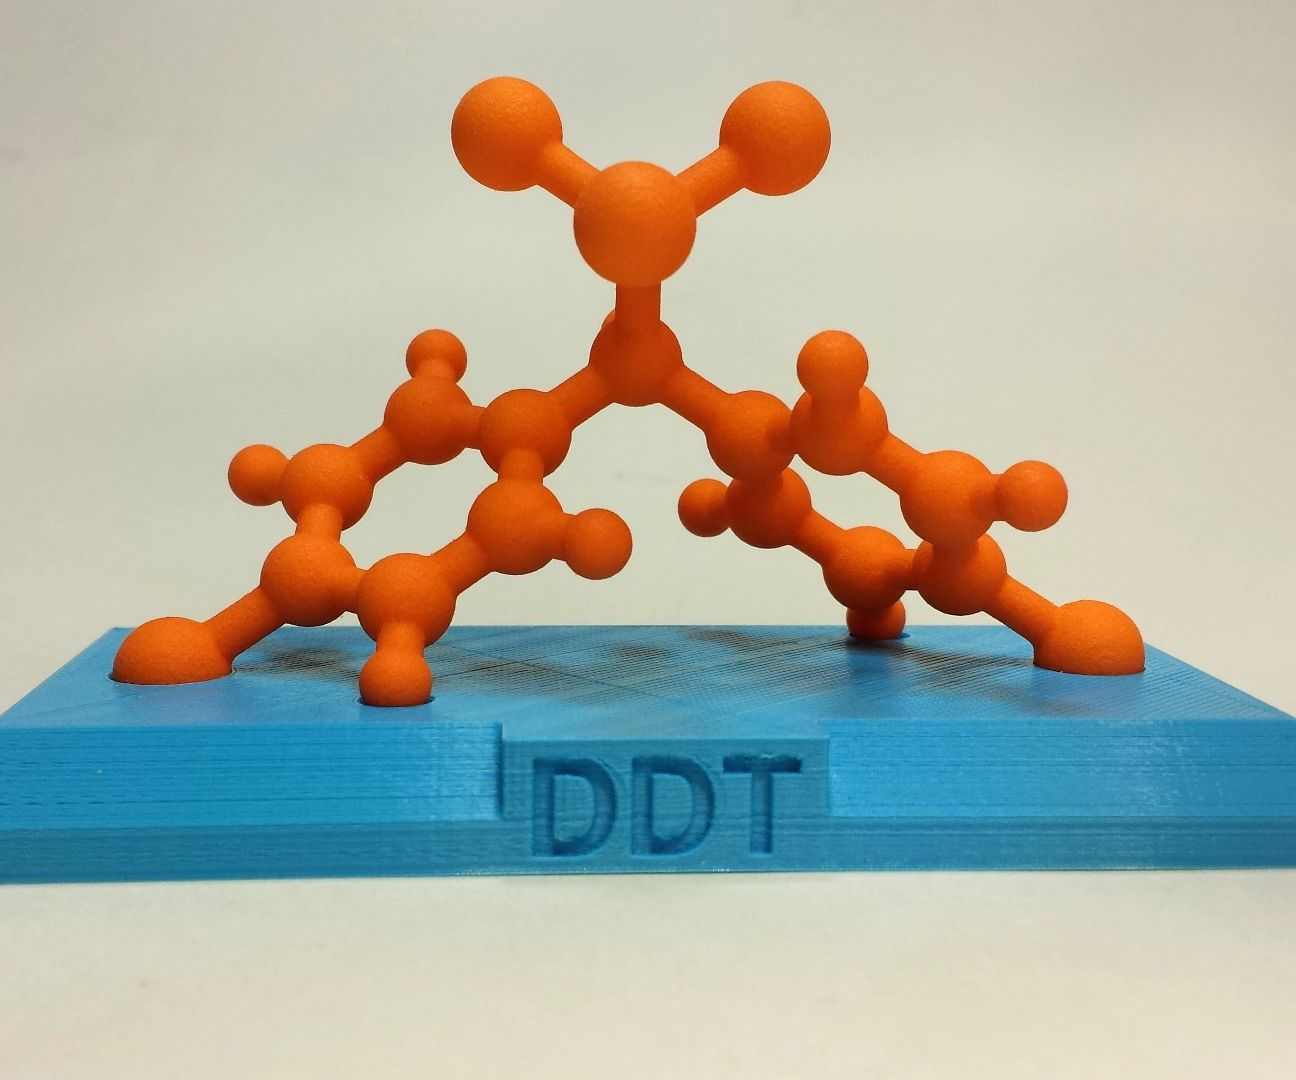 3D Print Chemical Structures